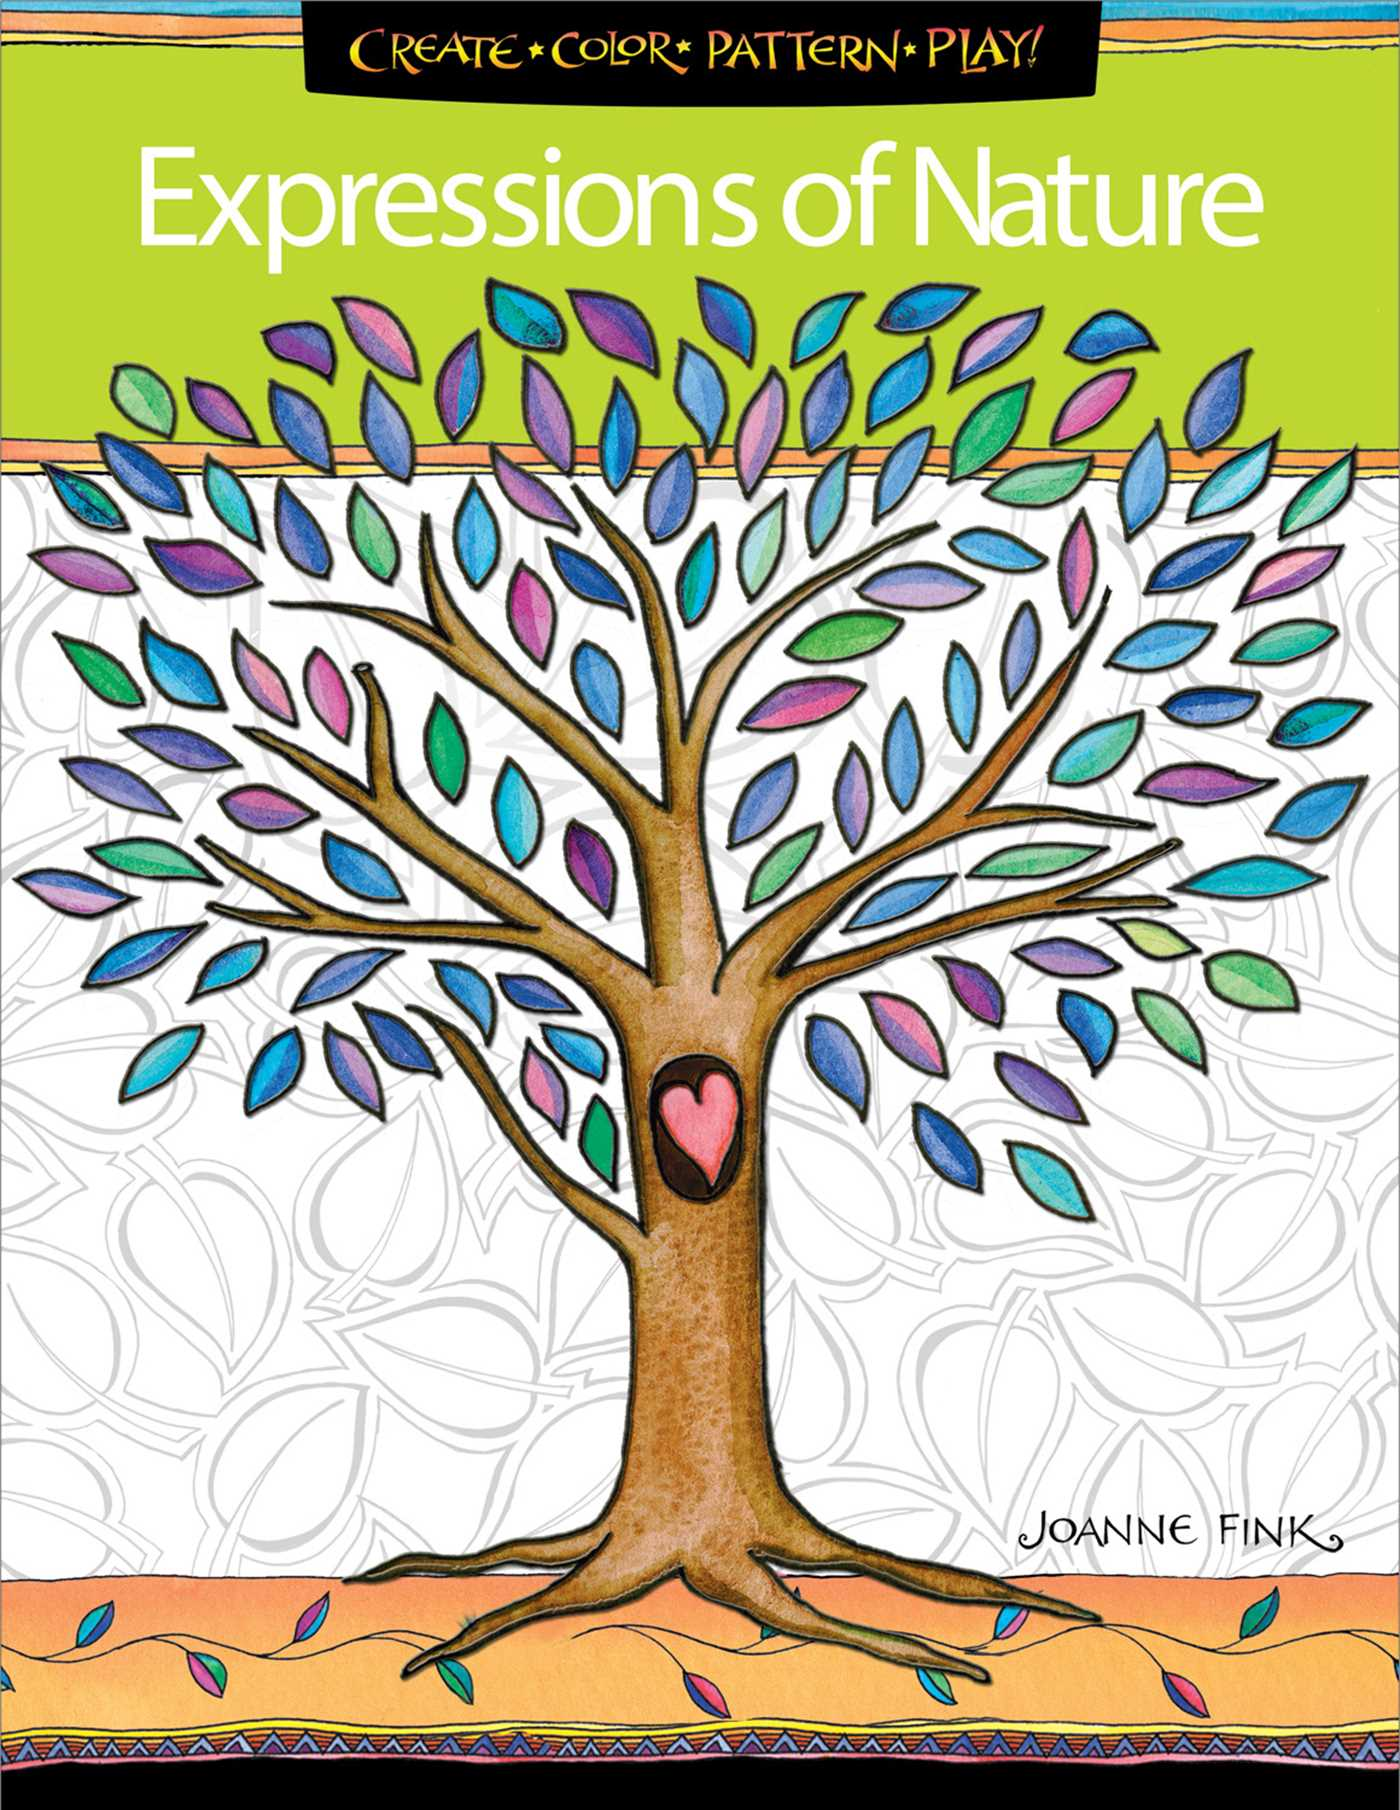 Expressions of Nature Coloring Book | Book by Joanne Fink | Official ...